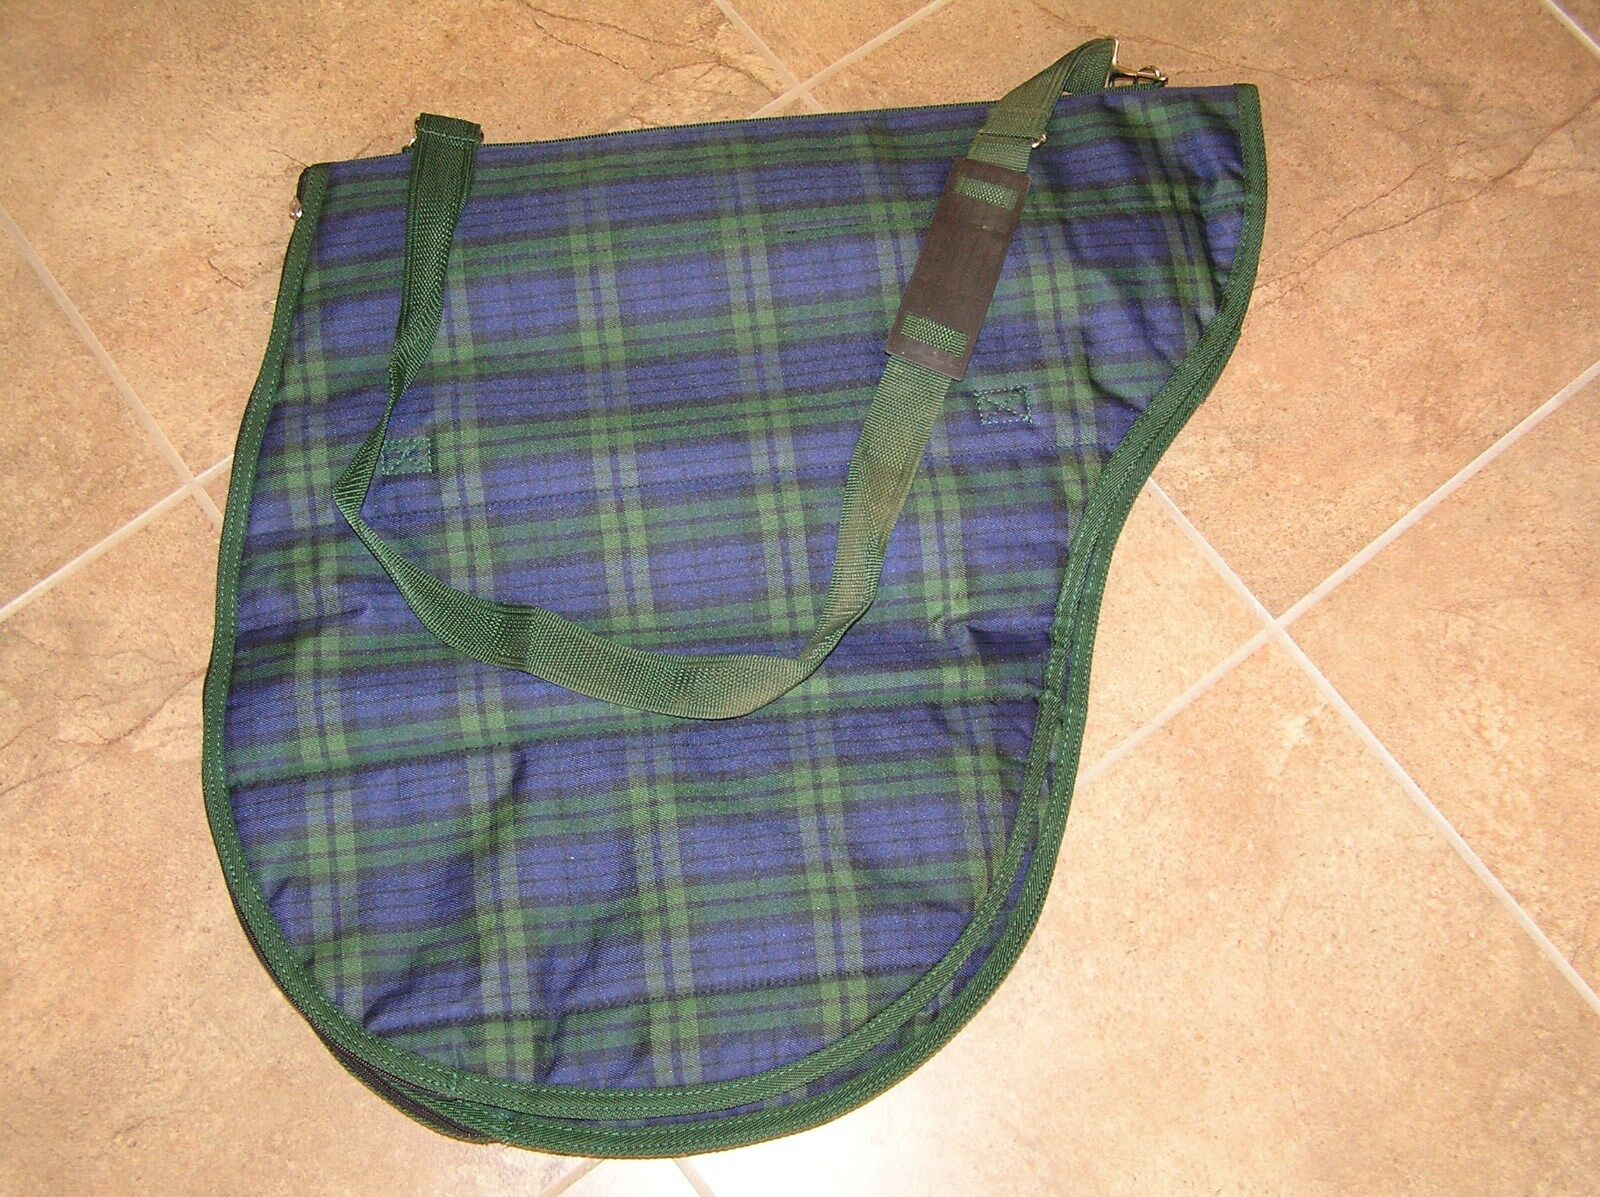 NEW UNBRANDED QUILTED HEAVY CORDURA ENGLISH SADDLE ZIPPERED CARRIER BAG